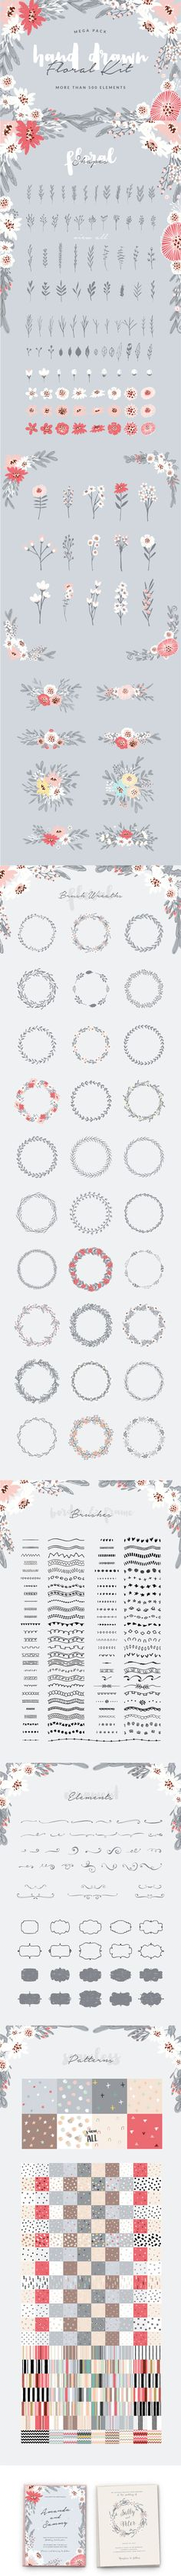 #HandDrawn #Floral Kit is the easiest and most flexible way to create stunning and unique #handdrawn #designs in minutes! 500 elements: Borders, #Frames and Floral Wreaths made as a brush so you can create stunning designs in an easy manner, #Ornaments, Labels, #Flowers, Leaves and #Bouquets which you can combine and create unique designs.